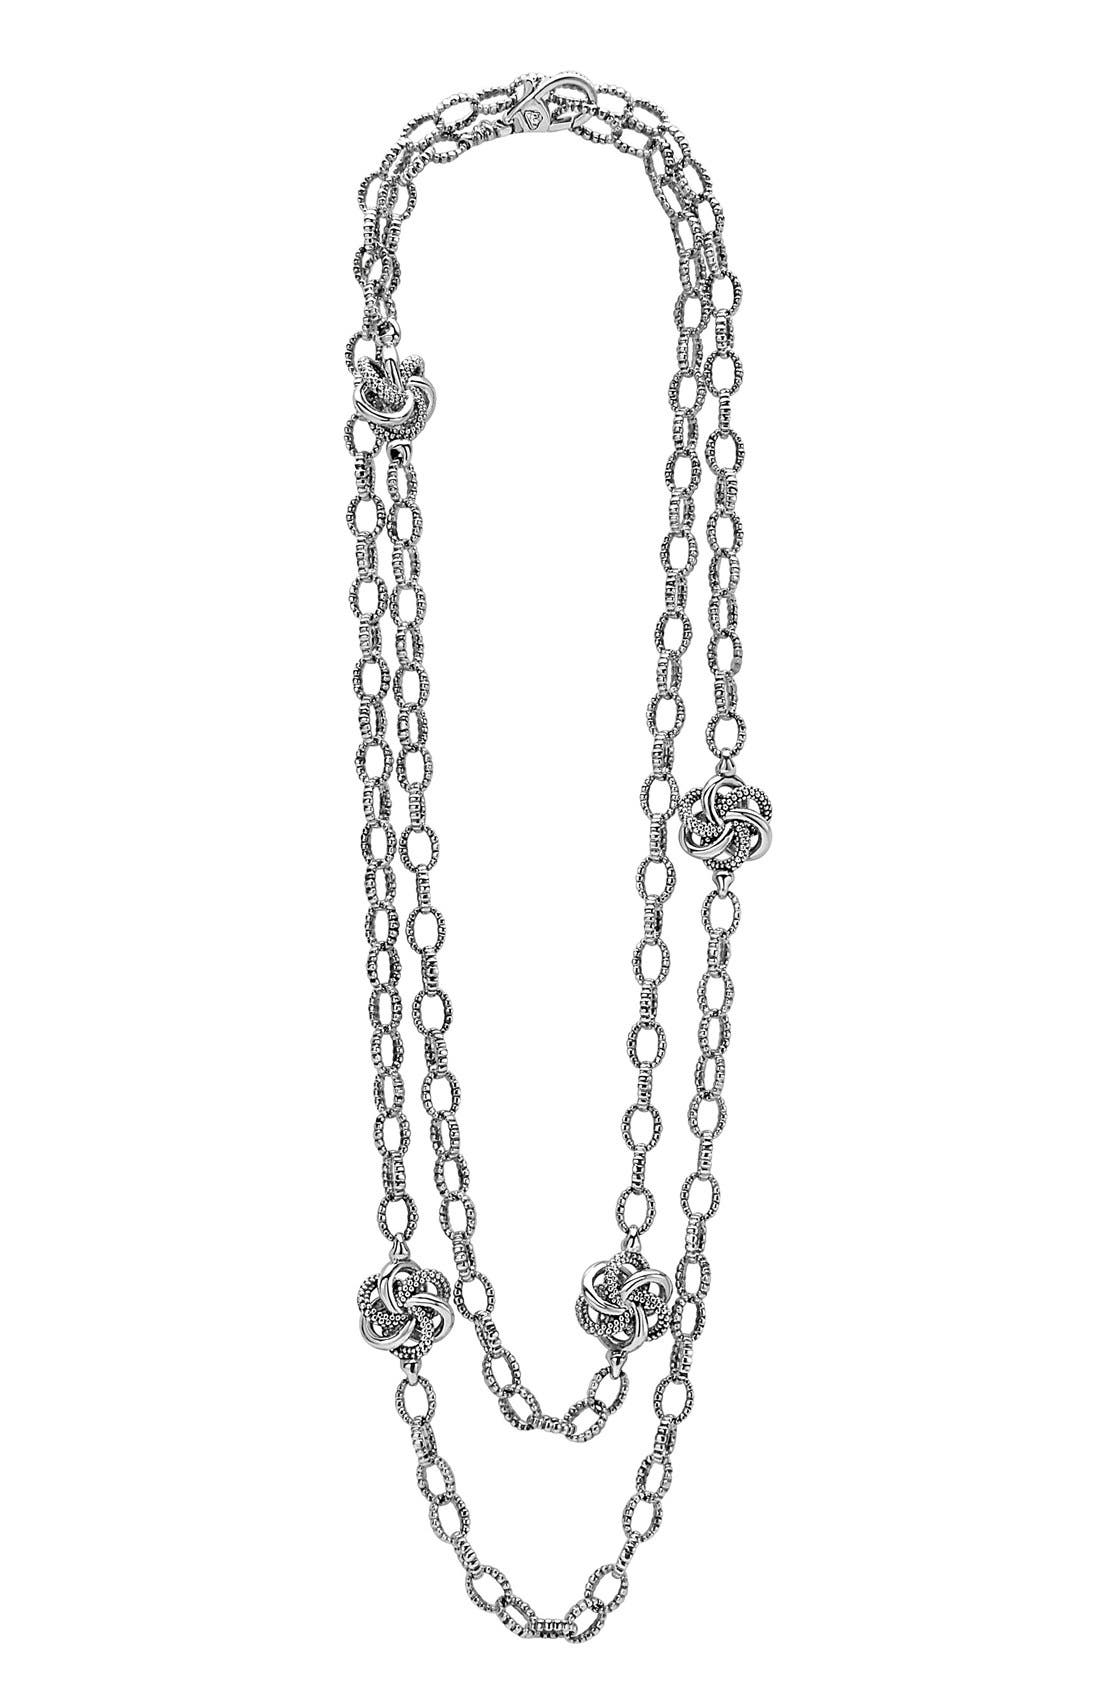 LAGOS 'Love Knot' Link Necklace